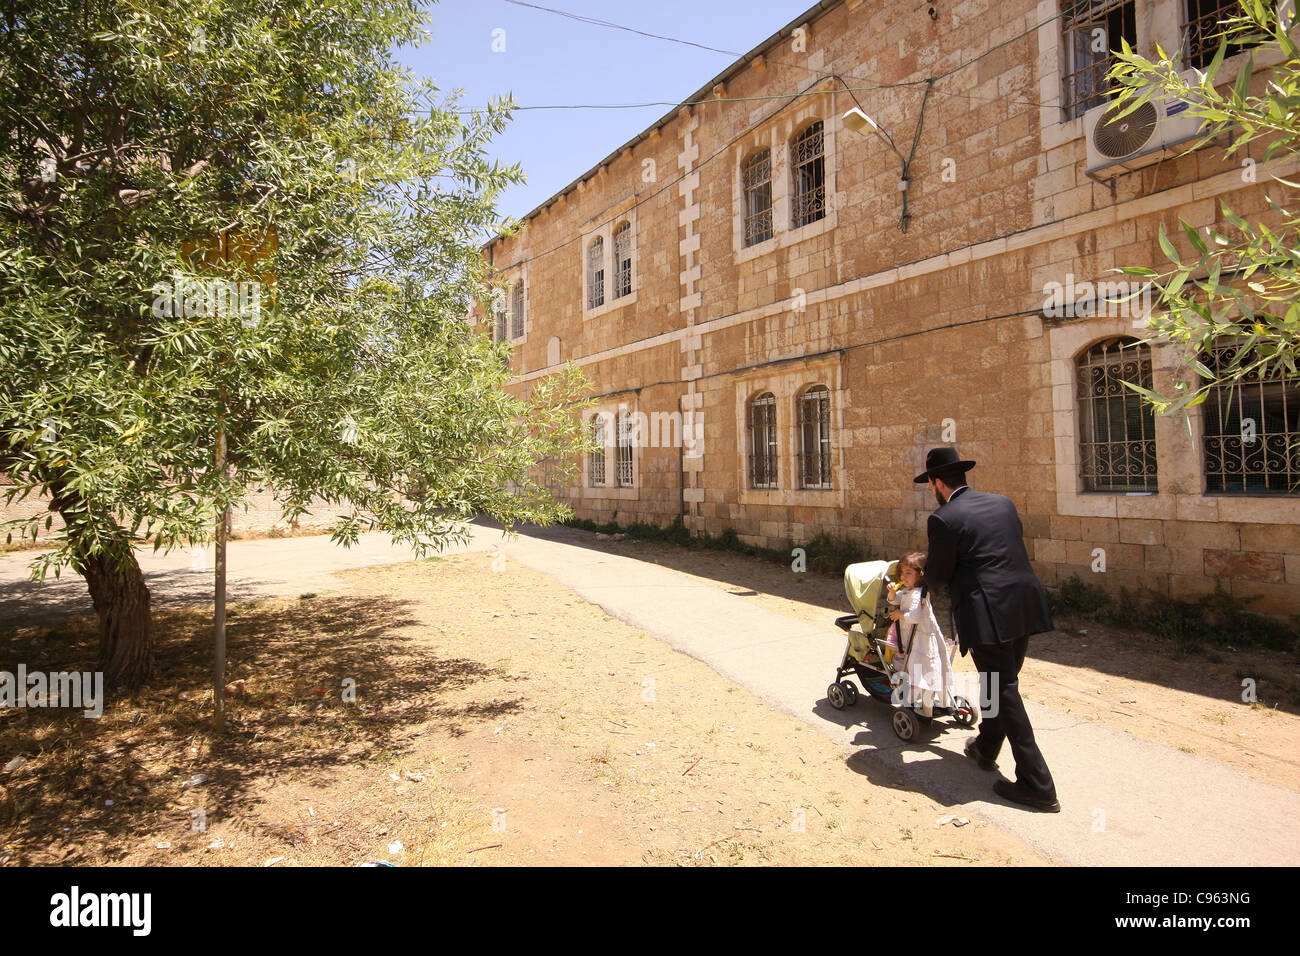 Nachlaot is a cluster of neighborhoods in central Jerusalem, Israel - Stock Image